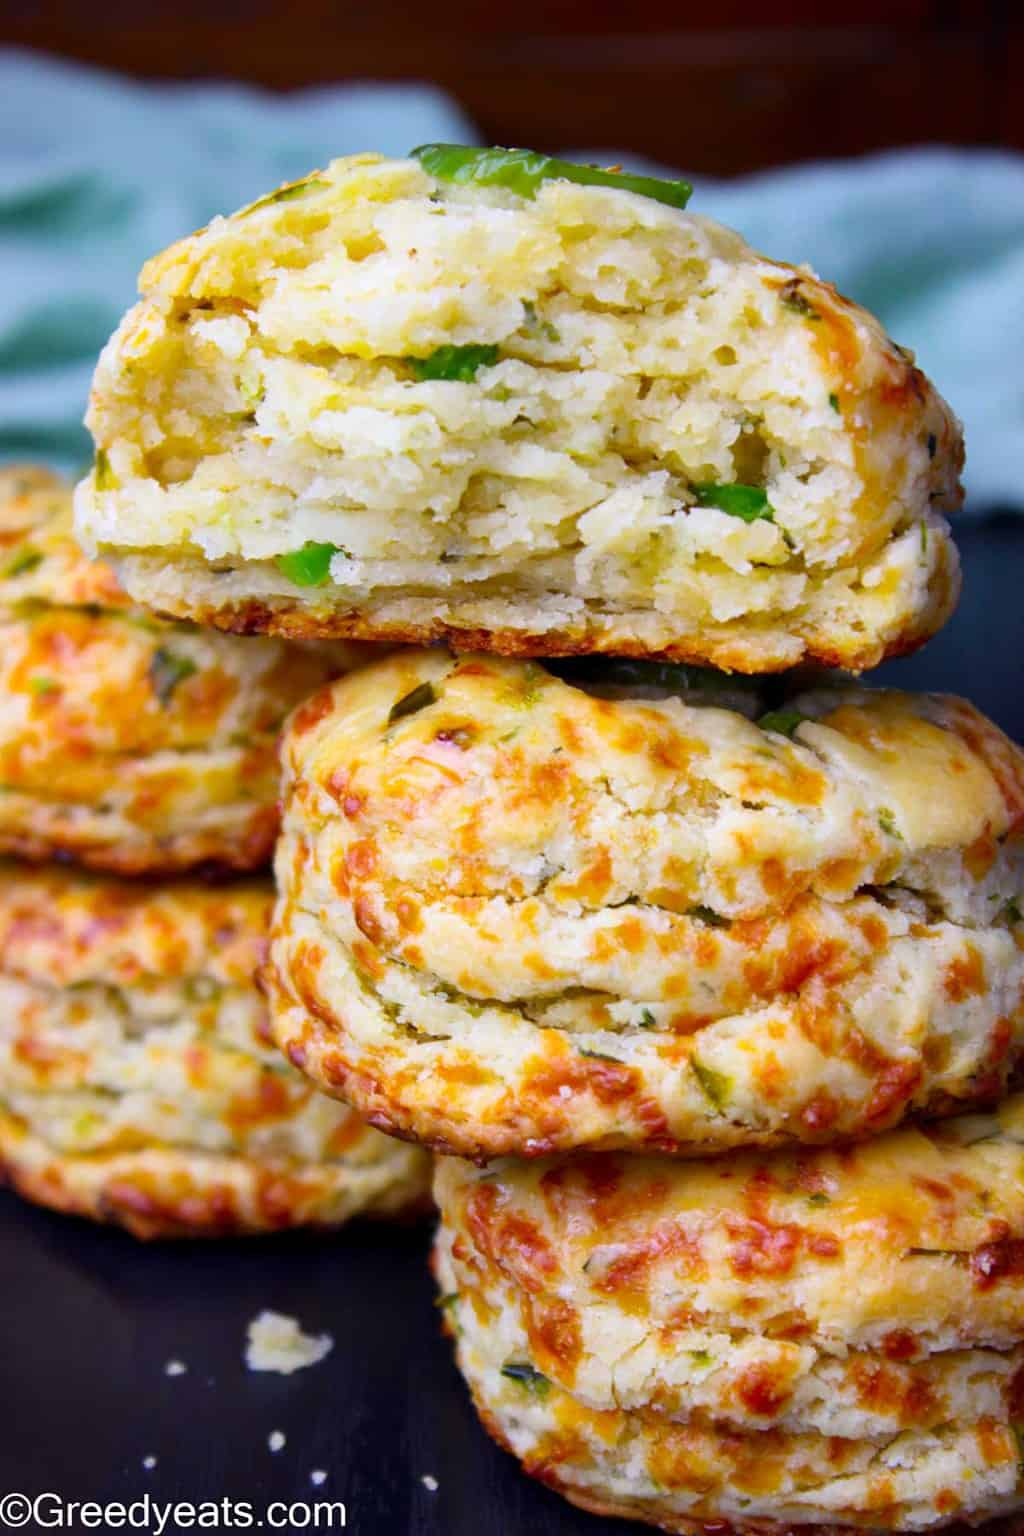 Homemade Jalapeno Cheddar Biscuits recipe that produces flakiest biscuits around. Recipe on Greedy Eats!